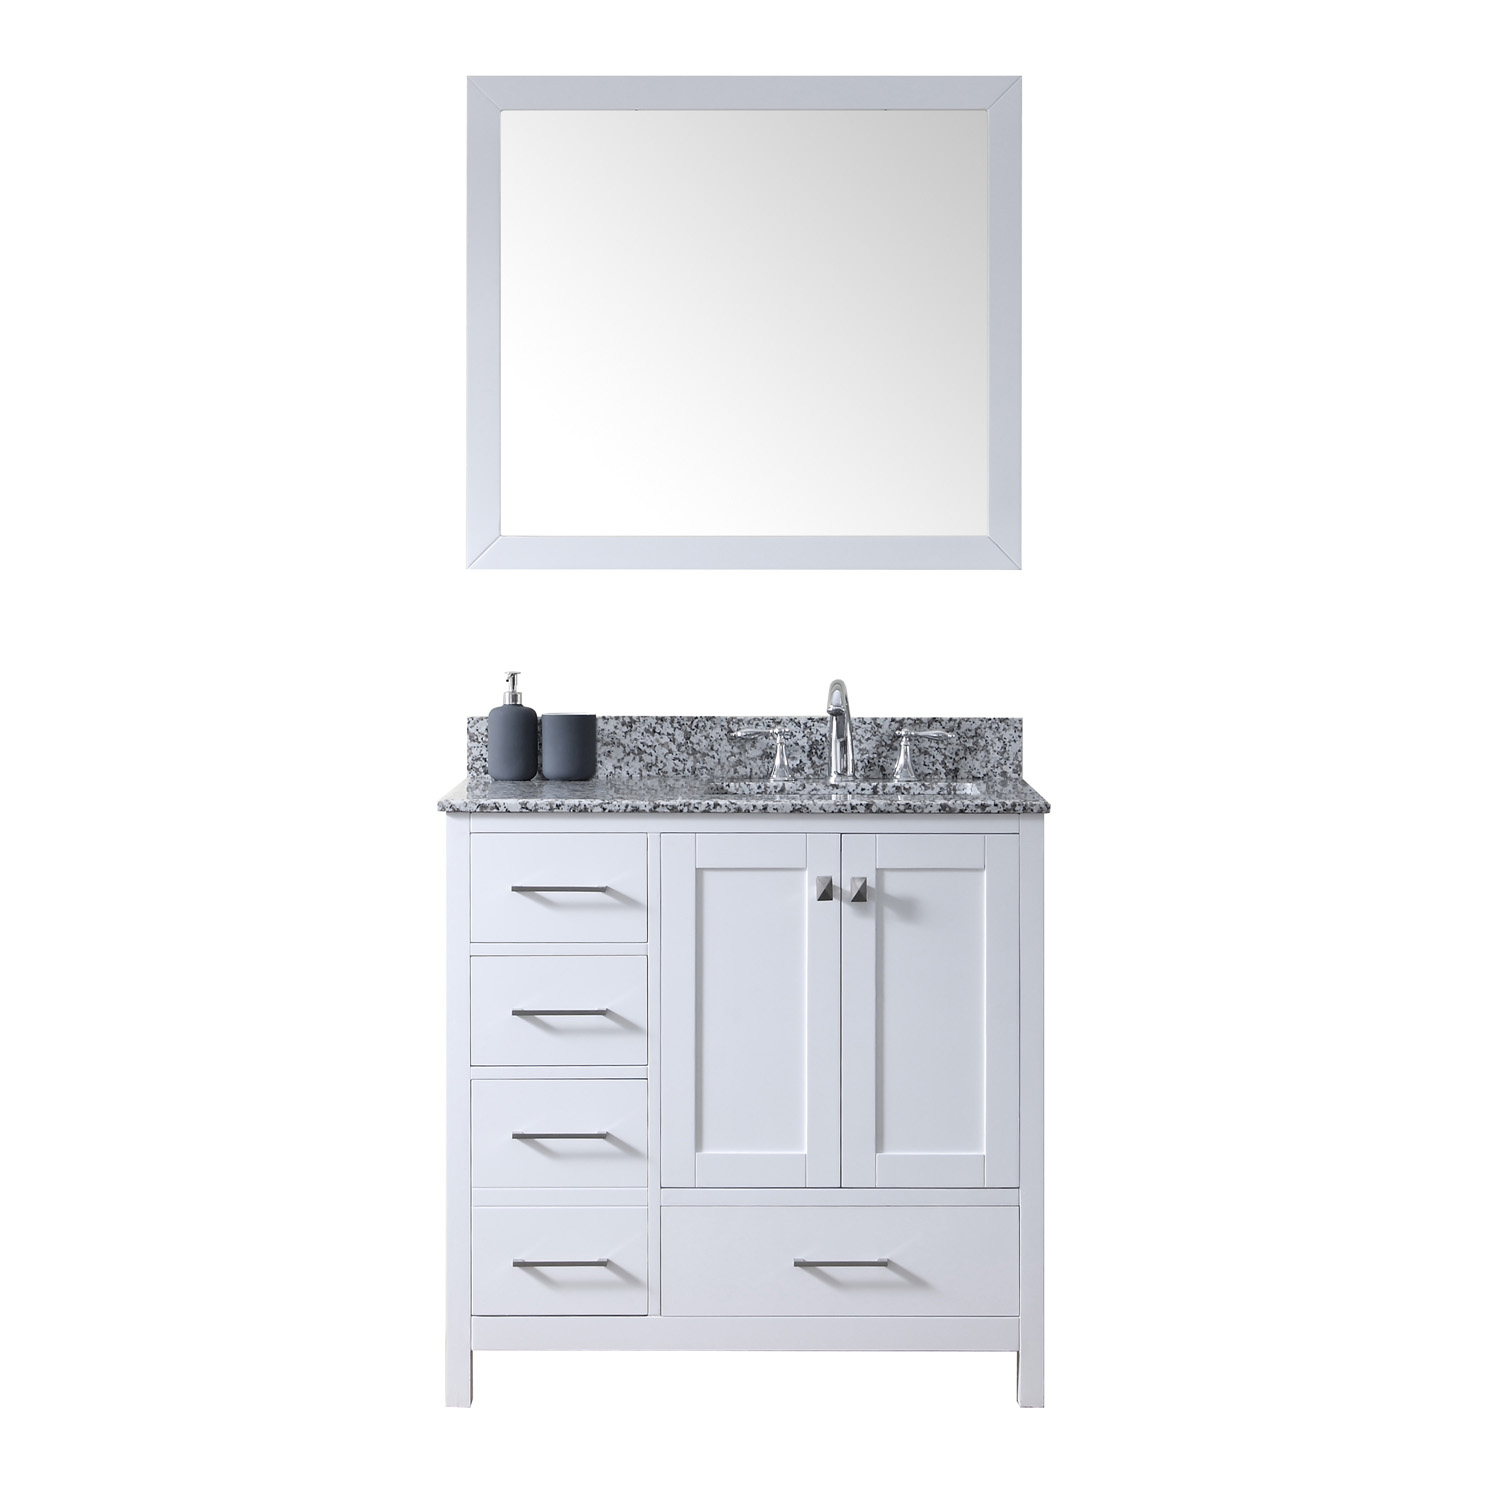 "Caroline Madison 36"" Vanity in White by Virtu USA - gs-28036l-awsq-wh"